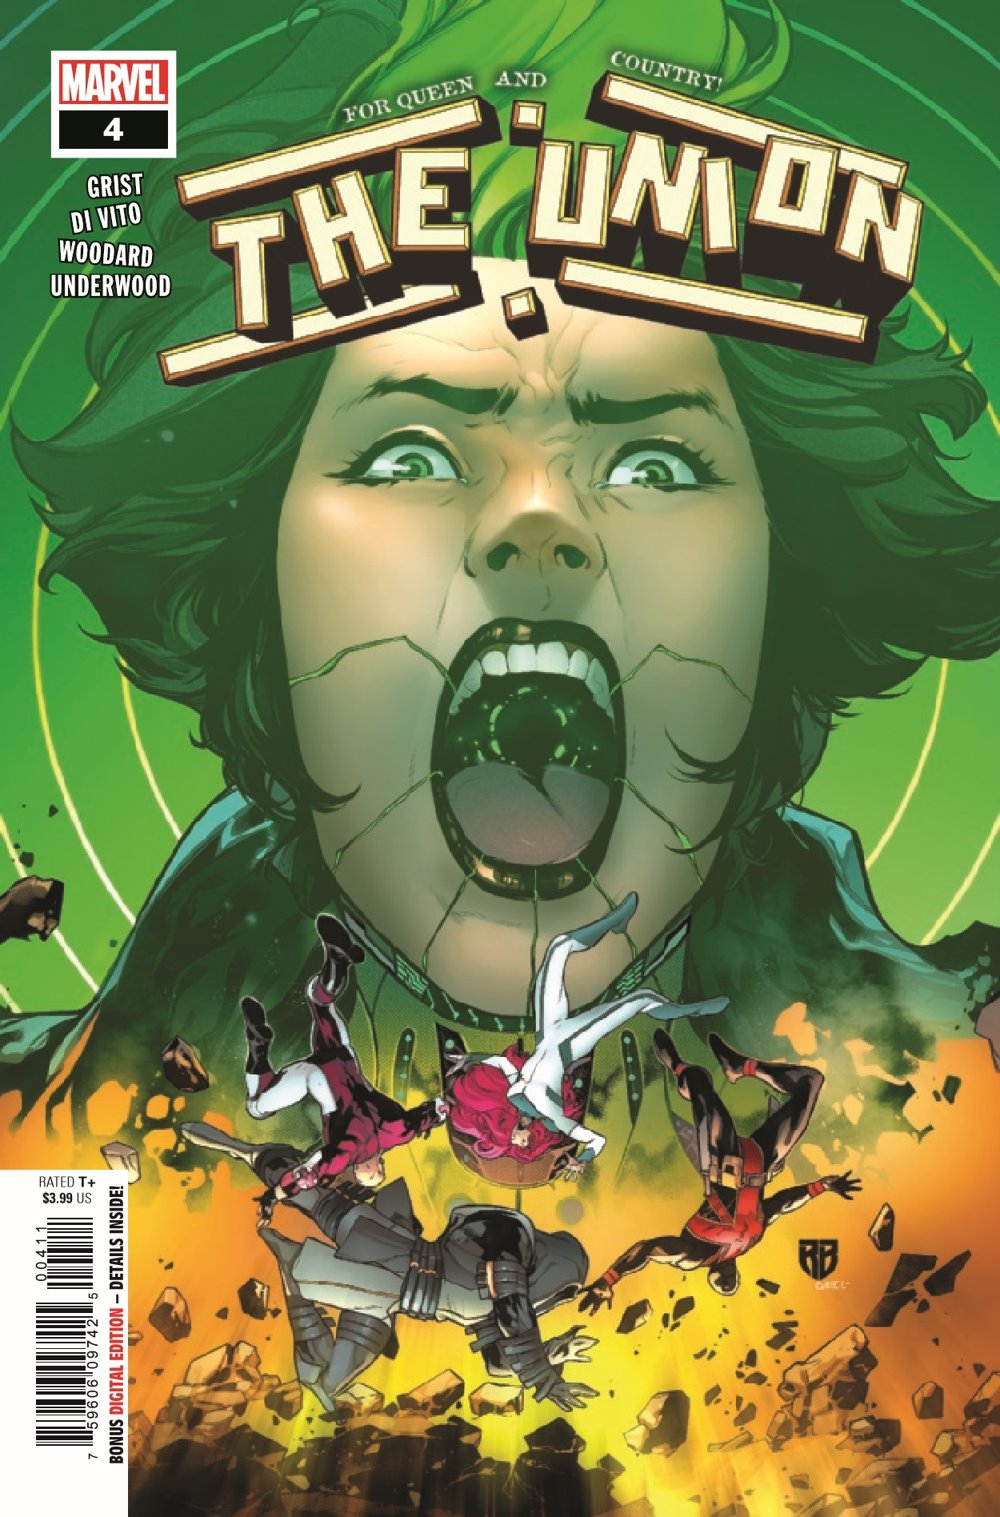 UNION2020004_Preview-1 ComicList Previews: THE UNION #4 (OF 5)